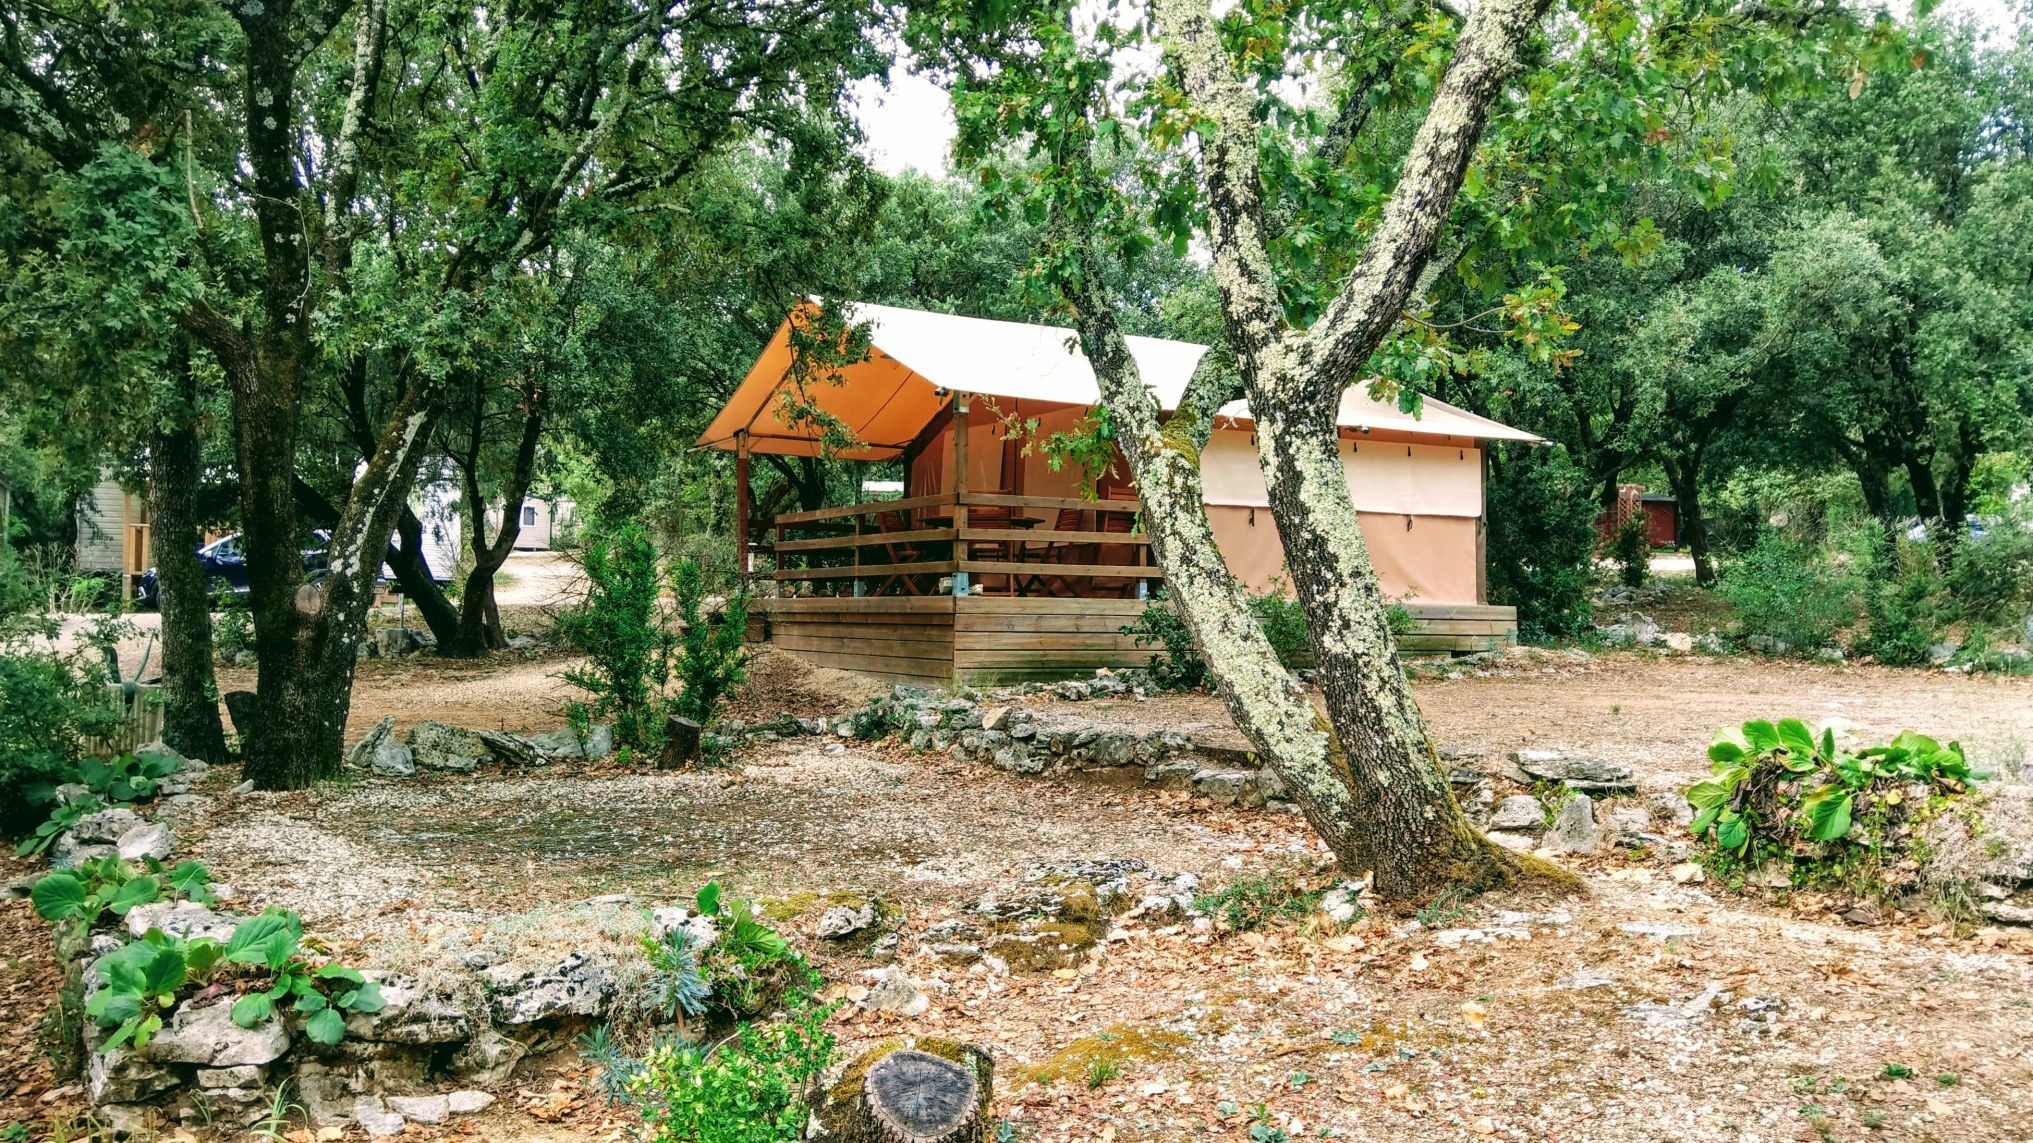 Camping buissiere photos (17)